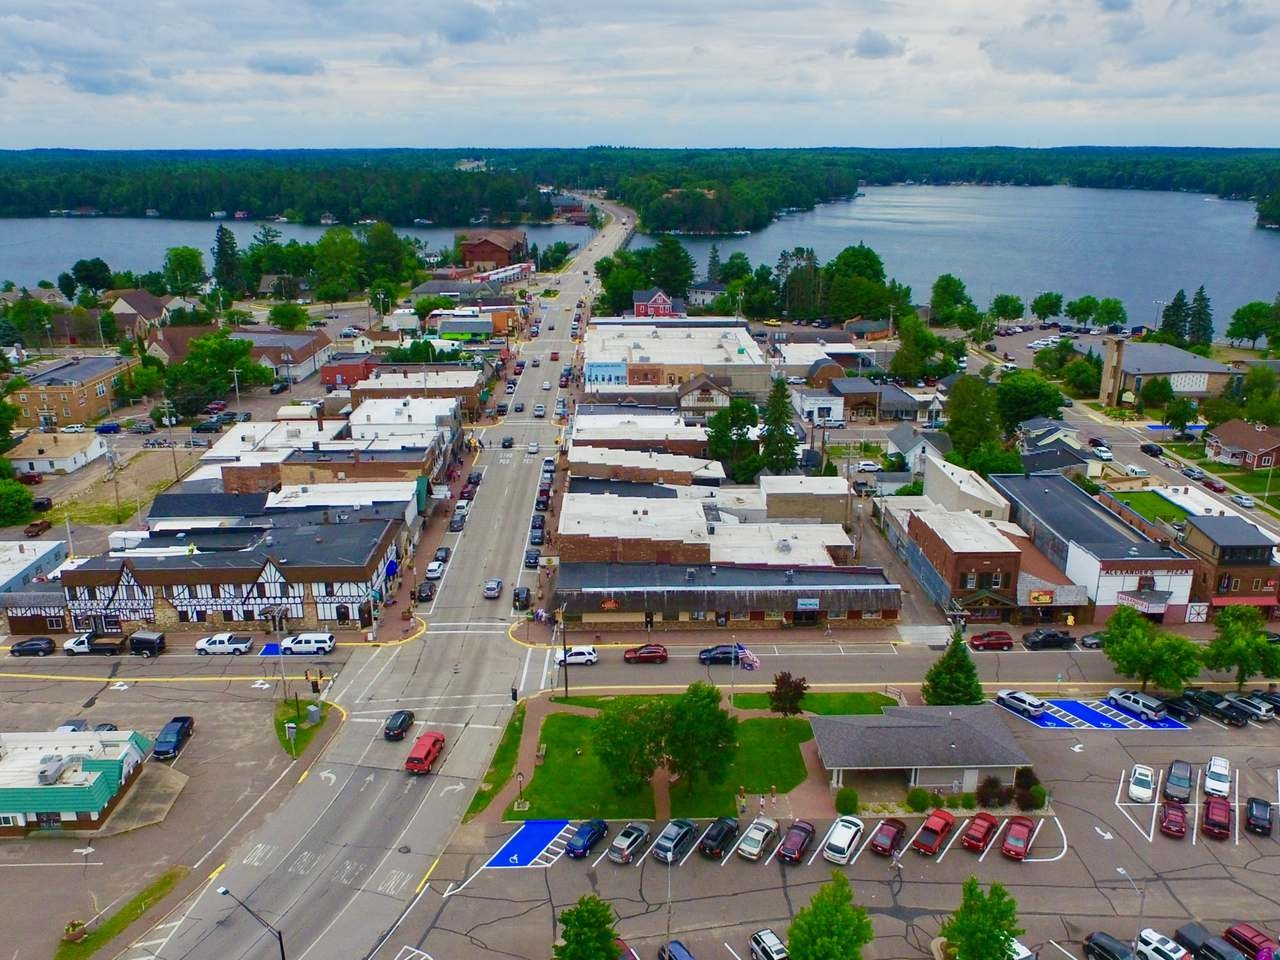 """Thriving Downtown Minocqua retail store with over 10 years of business. Retail store encompasses 1500 sq ft and comes with large attached garage/loading area and expansive basement for dry storage and inventory. Also included are 2 upper unit apartments for extra income potential. These upper units are both 2 BR 1 BA with a large storage unit separating them. """"A Step Up"""" is well known in the area for decorating homes with the """"Northwoods Charm"""" everyone is looking for. Business comes with great books and nets well. Property is situated in the heart of downtown in the most high trafficked area. The inventory fluctuates and will be addressed outside of the deal. Call listing agent to obtain financials."""